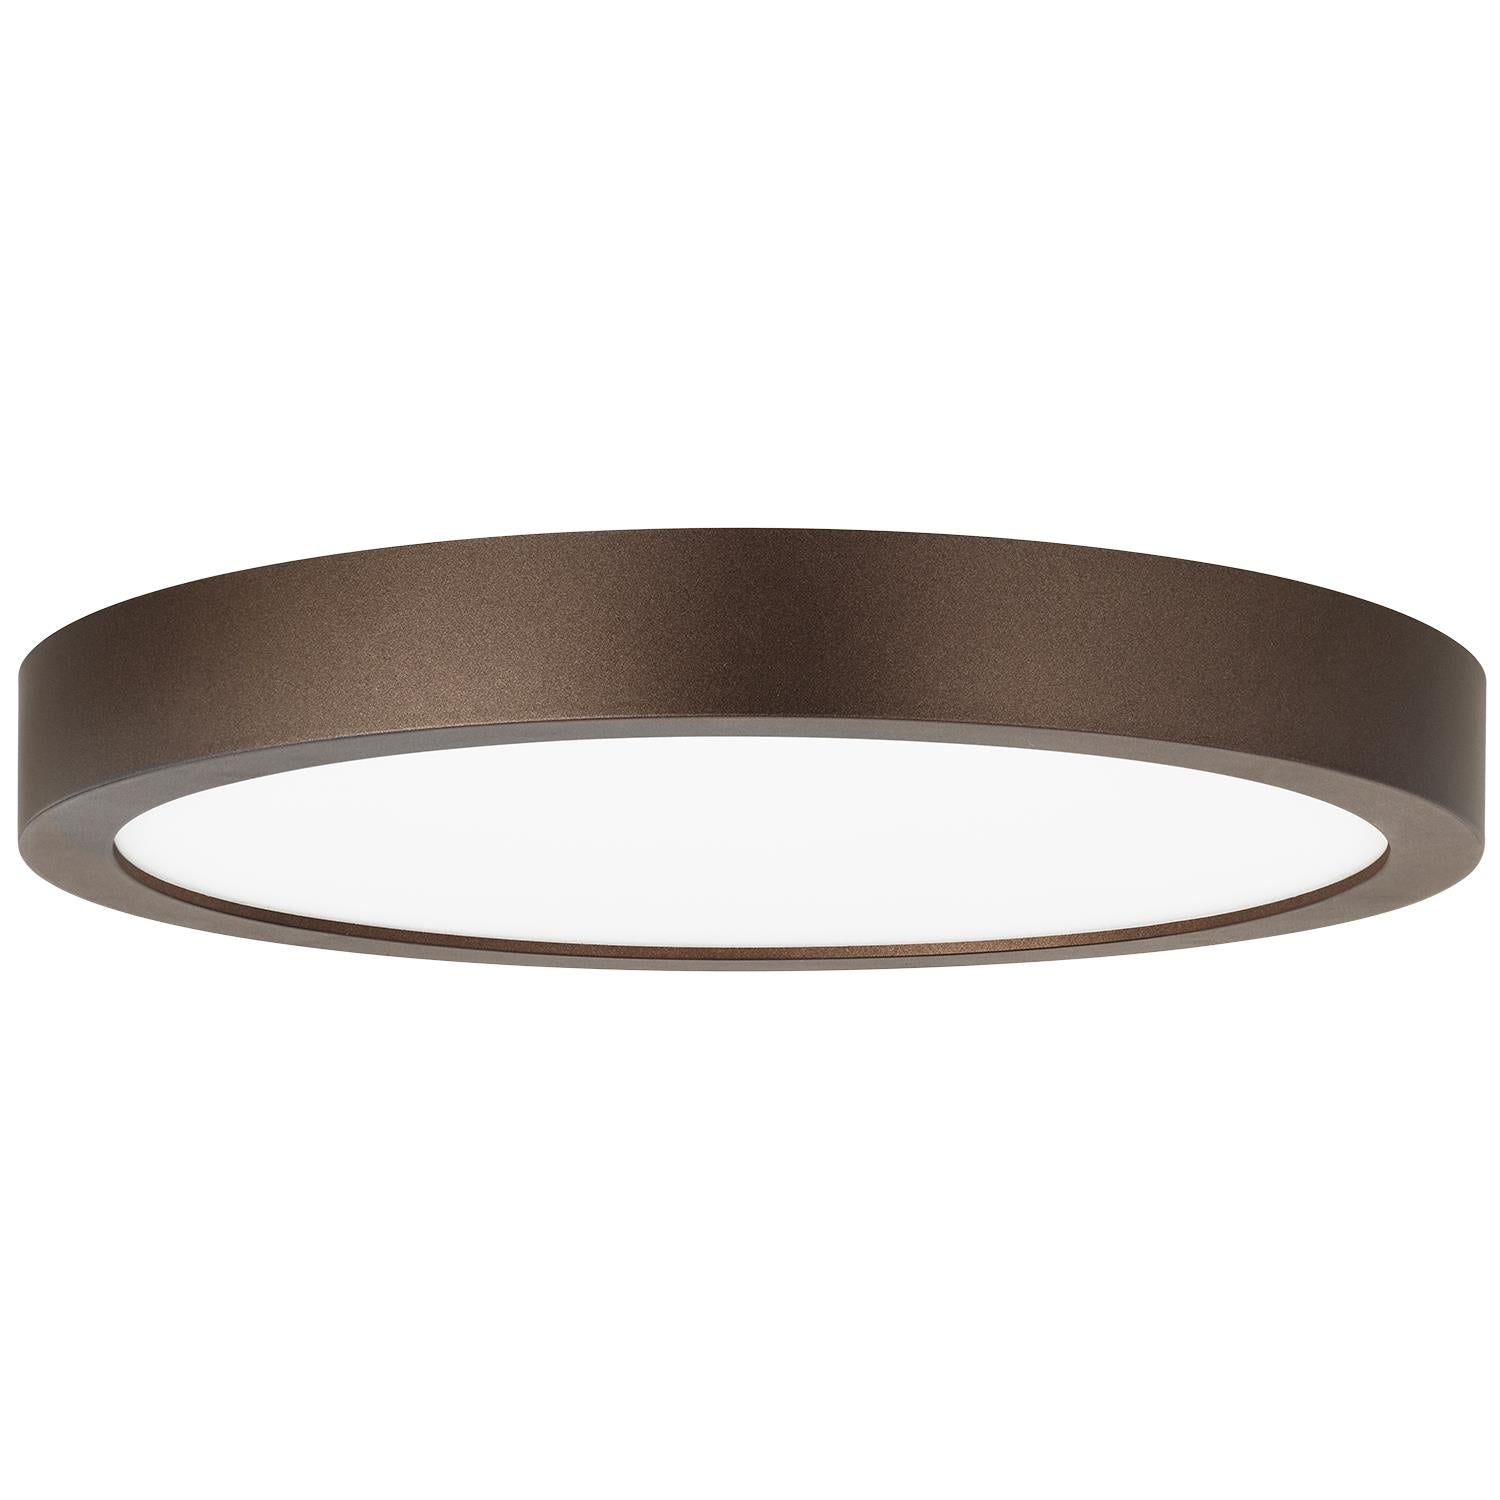 Sunlite 7in. Round LED Mini Flat Panel Fixture, 3000K - Warm White, Bronze Finish